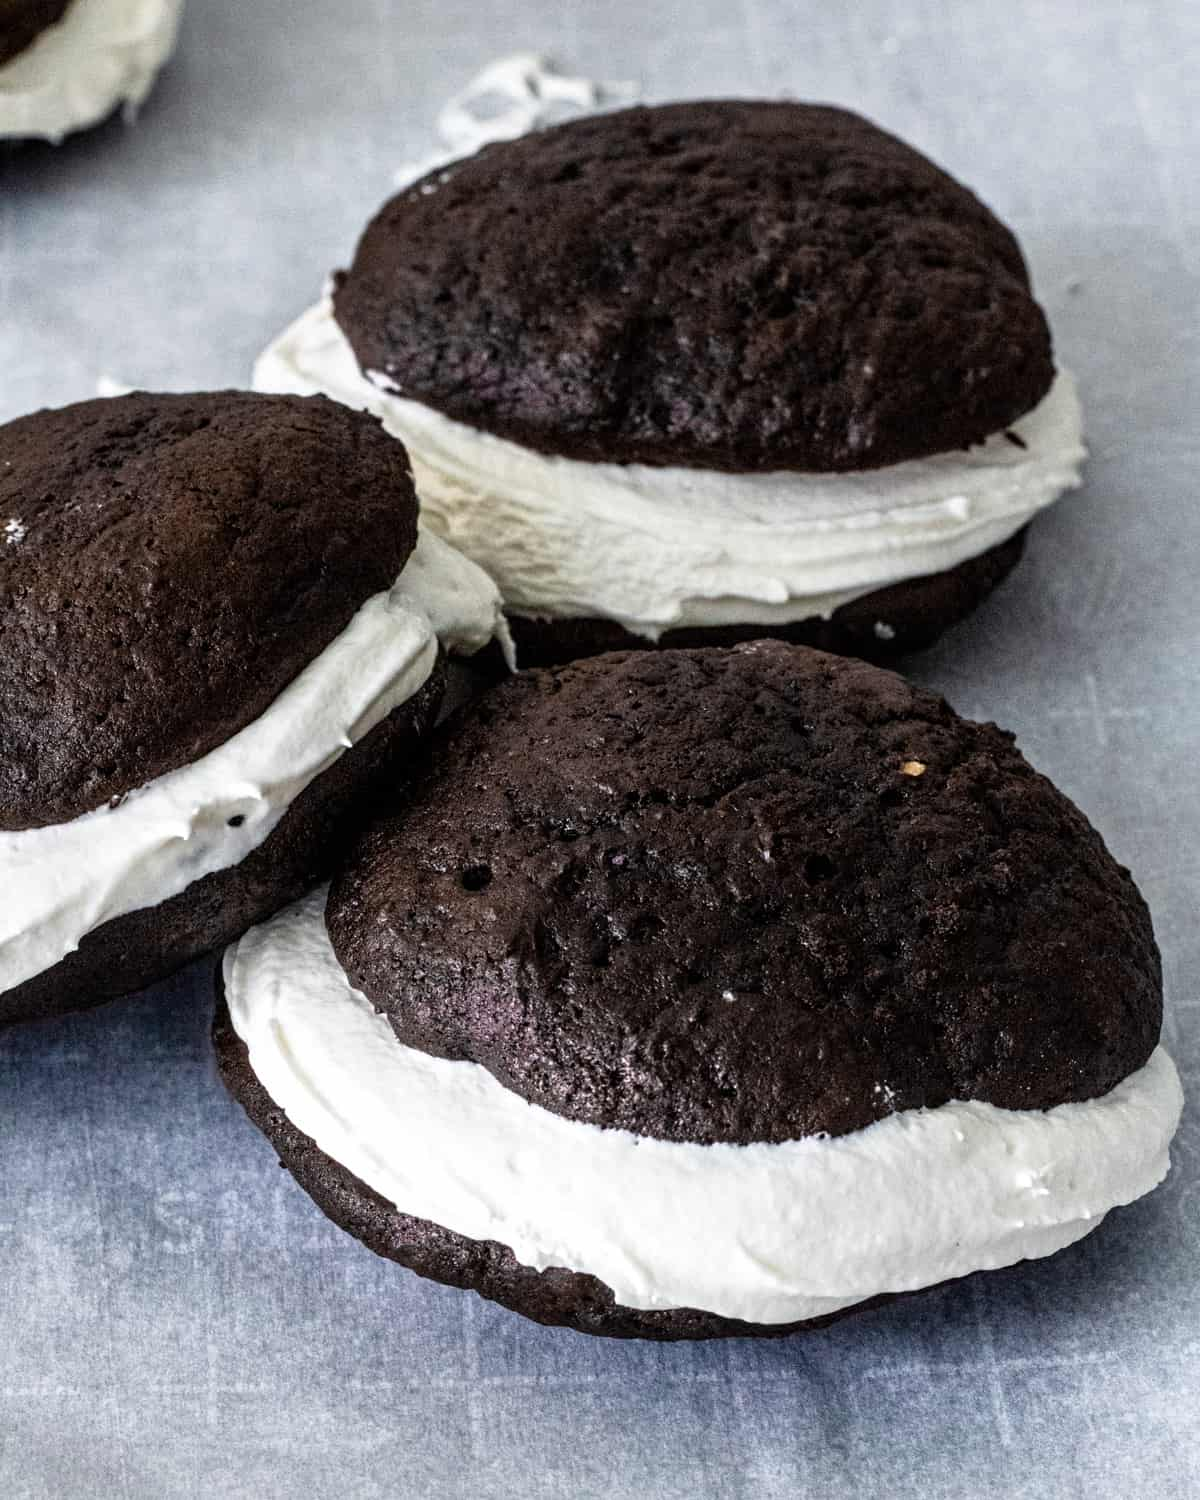 Three Whoopie pies on a parchment sheet with one of them shingled on another.